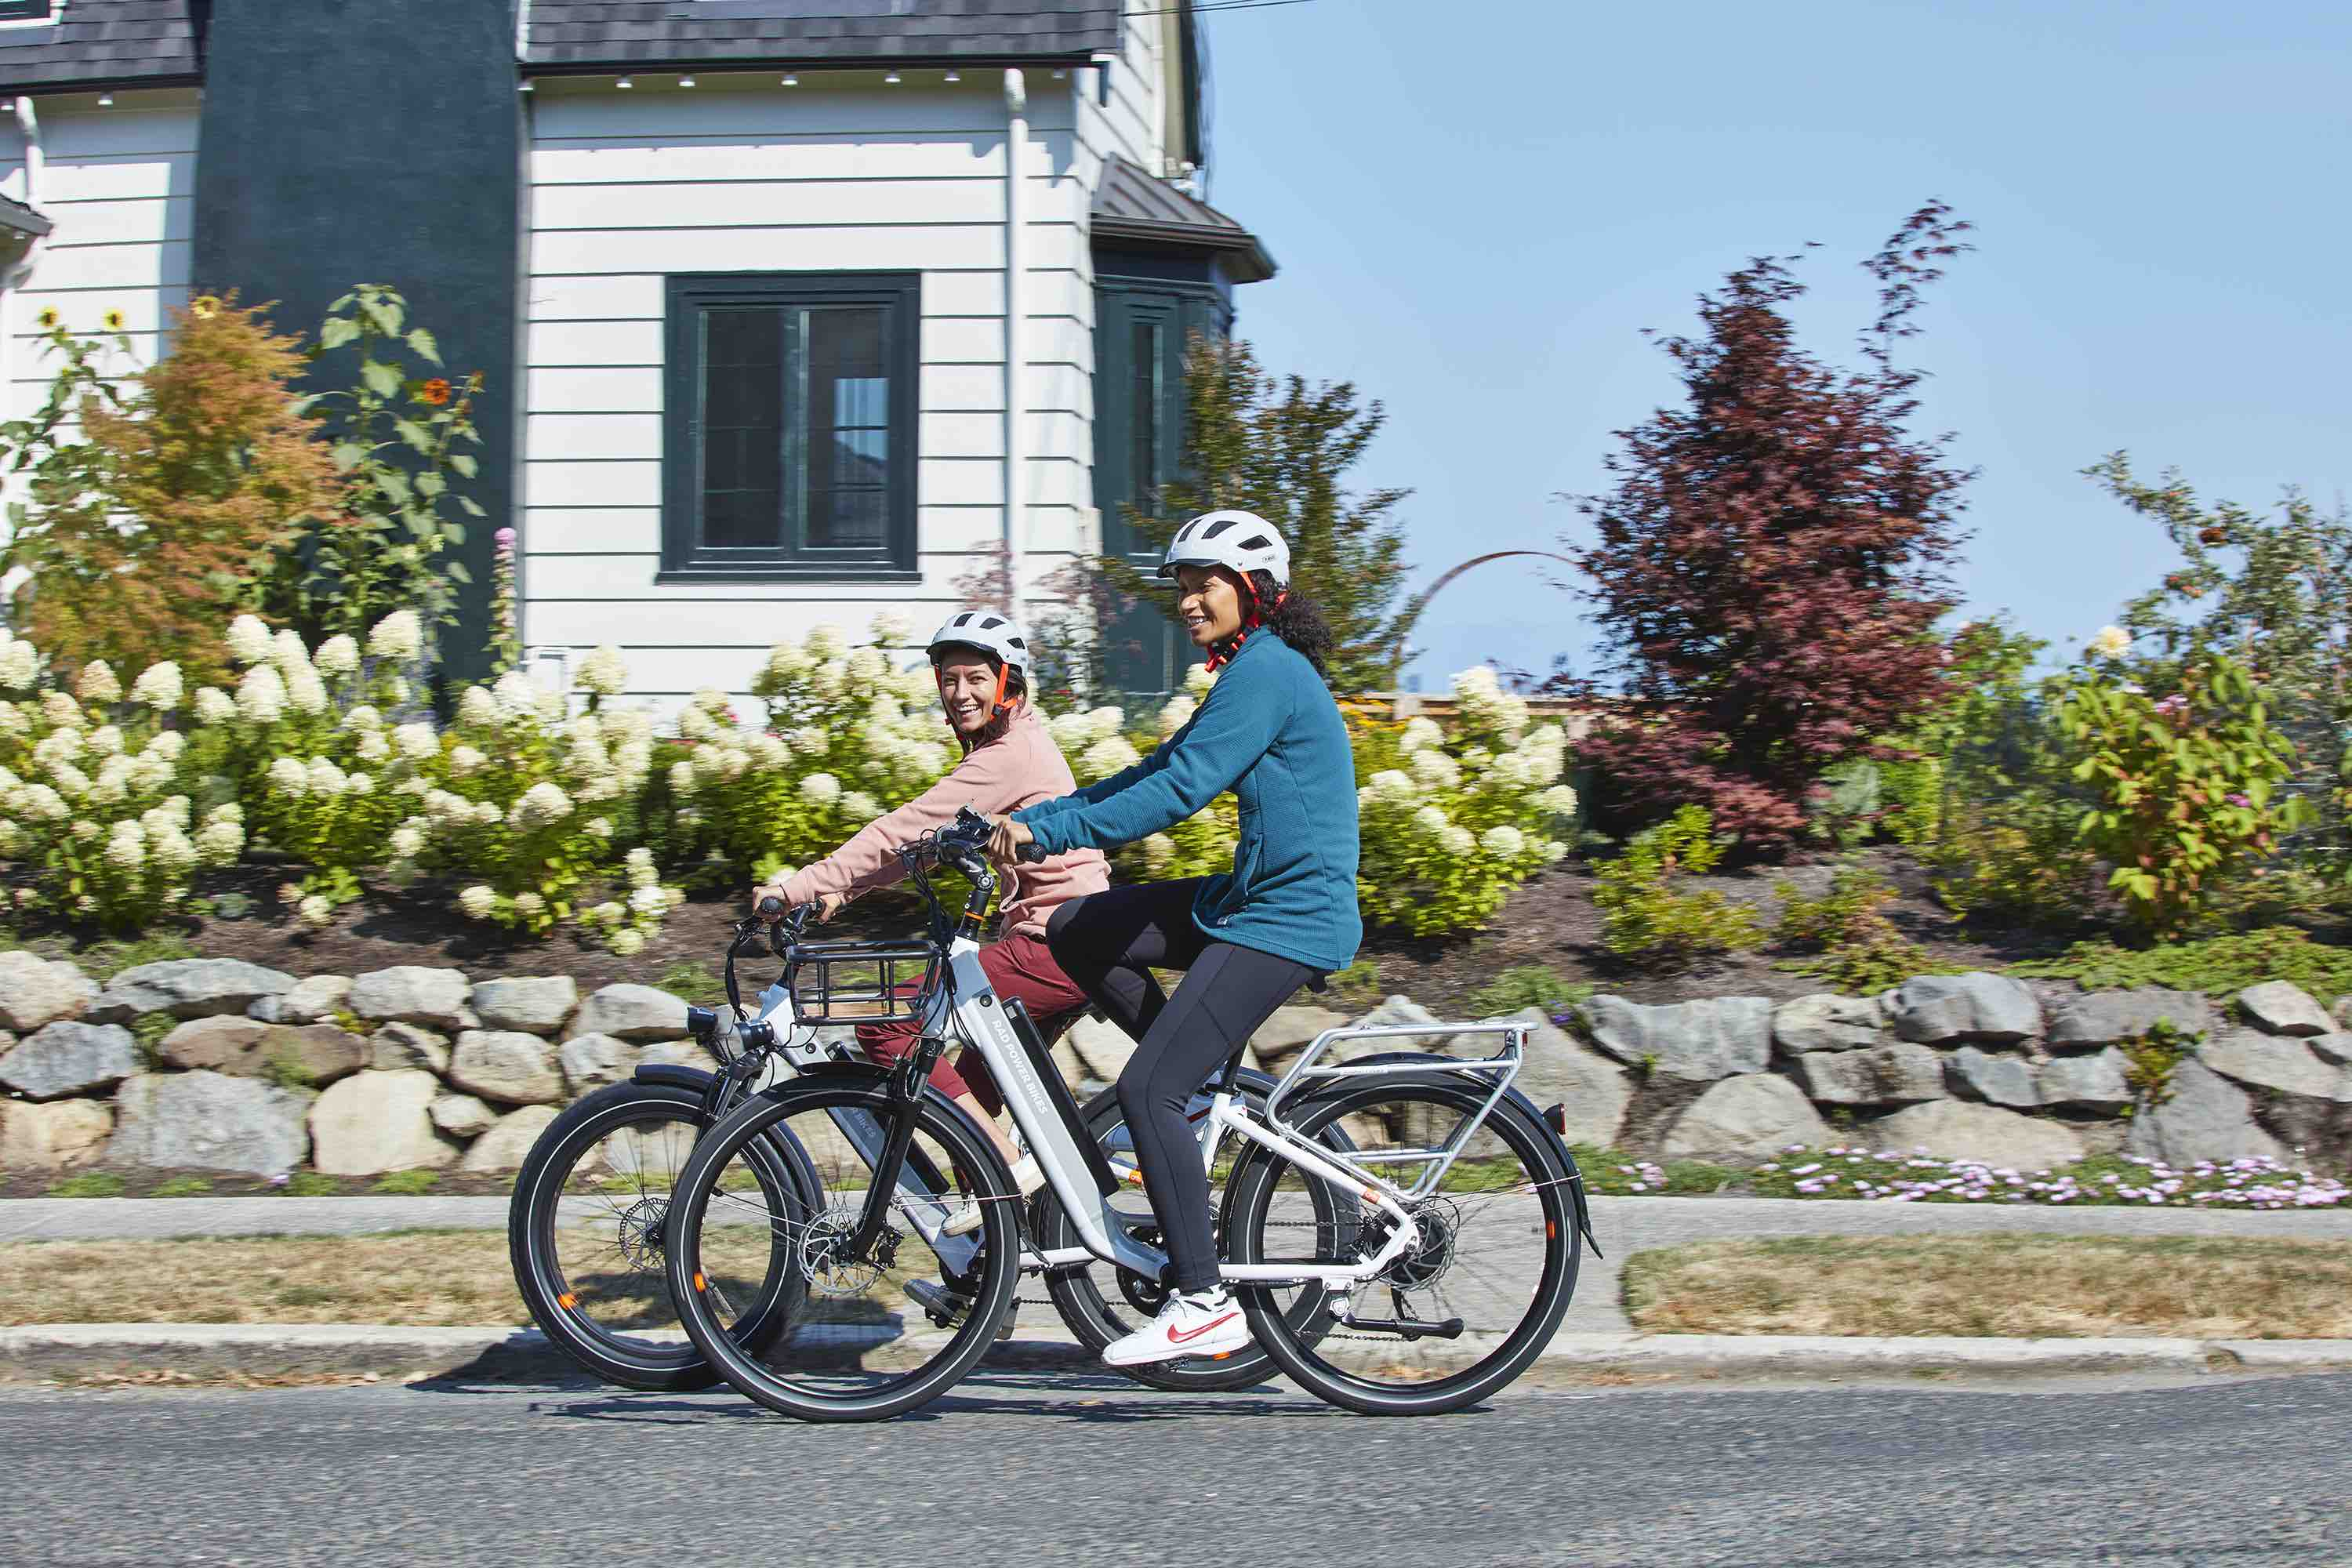 Two women ride a RadCity 5 Plus and a RadCity 6 Plus down a suburban street.